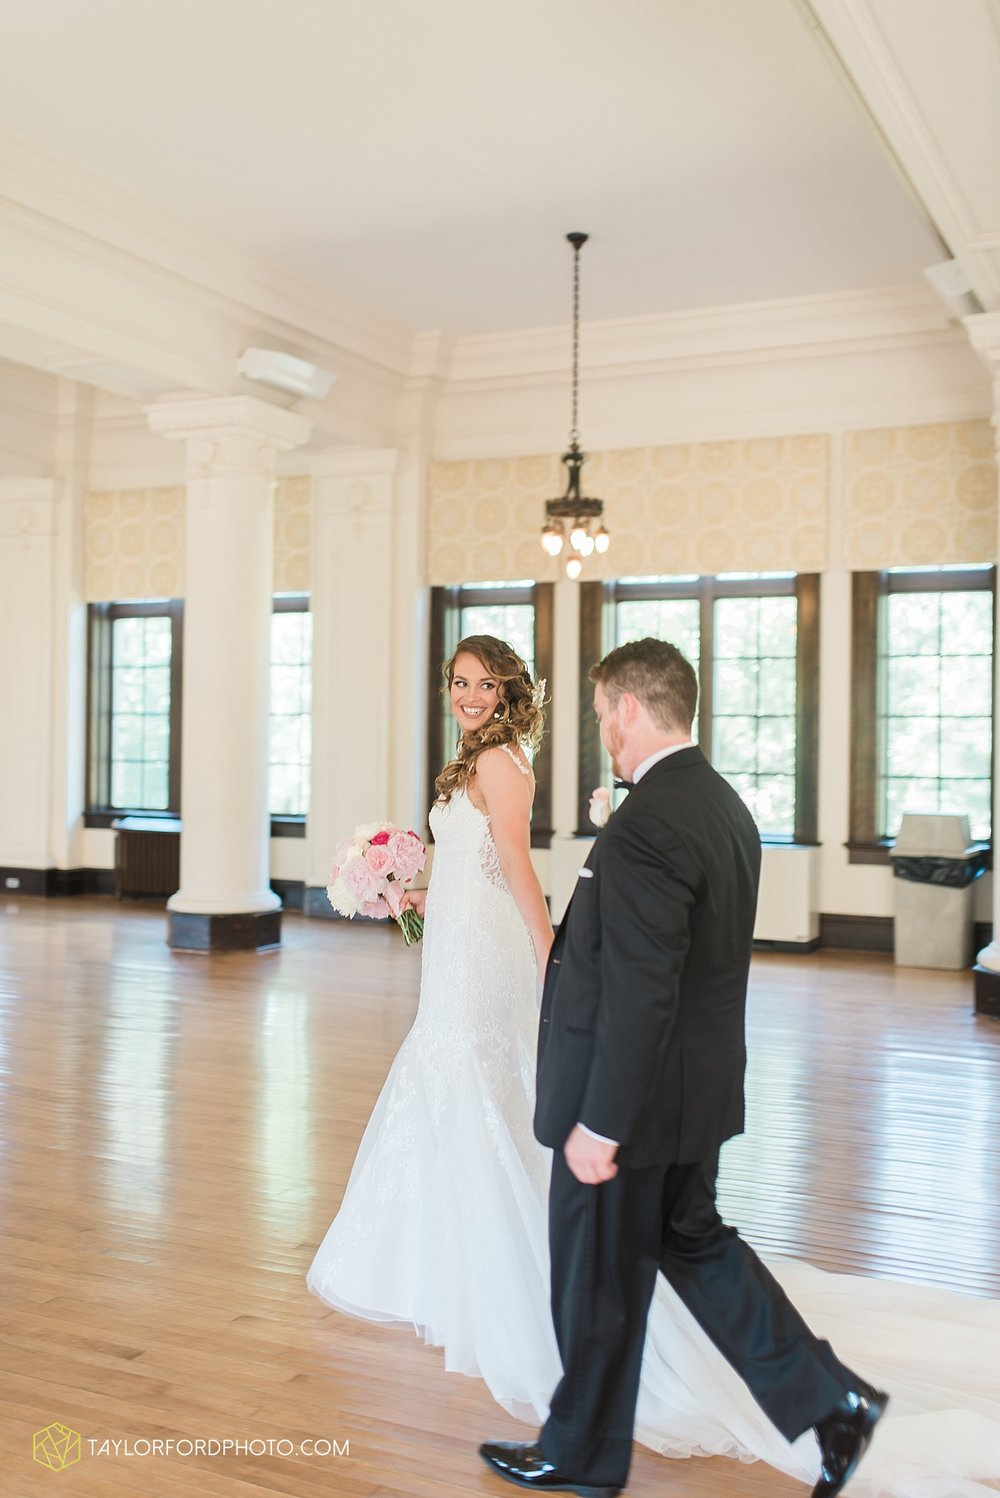 terre-haute-indiana-wedding-photographer-taylor-ford-photography-saint-marys-of-the-woods-college-weddings_2895.jpg